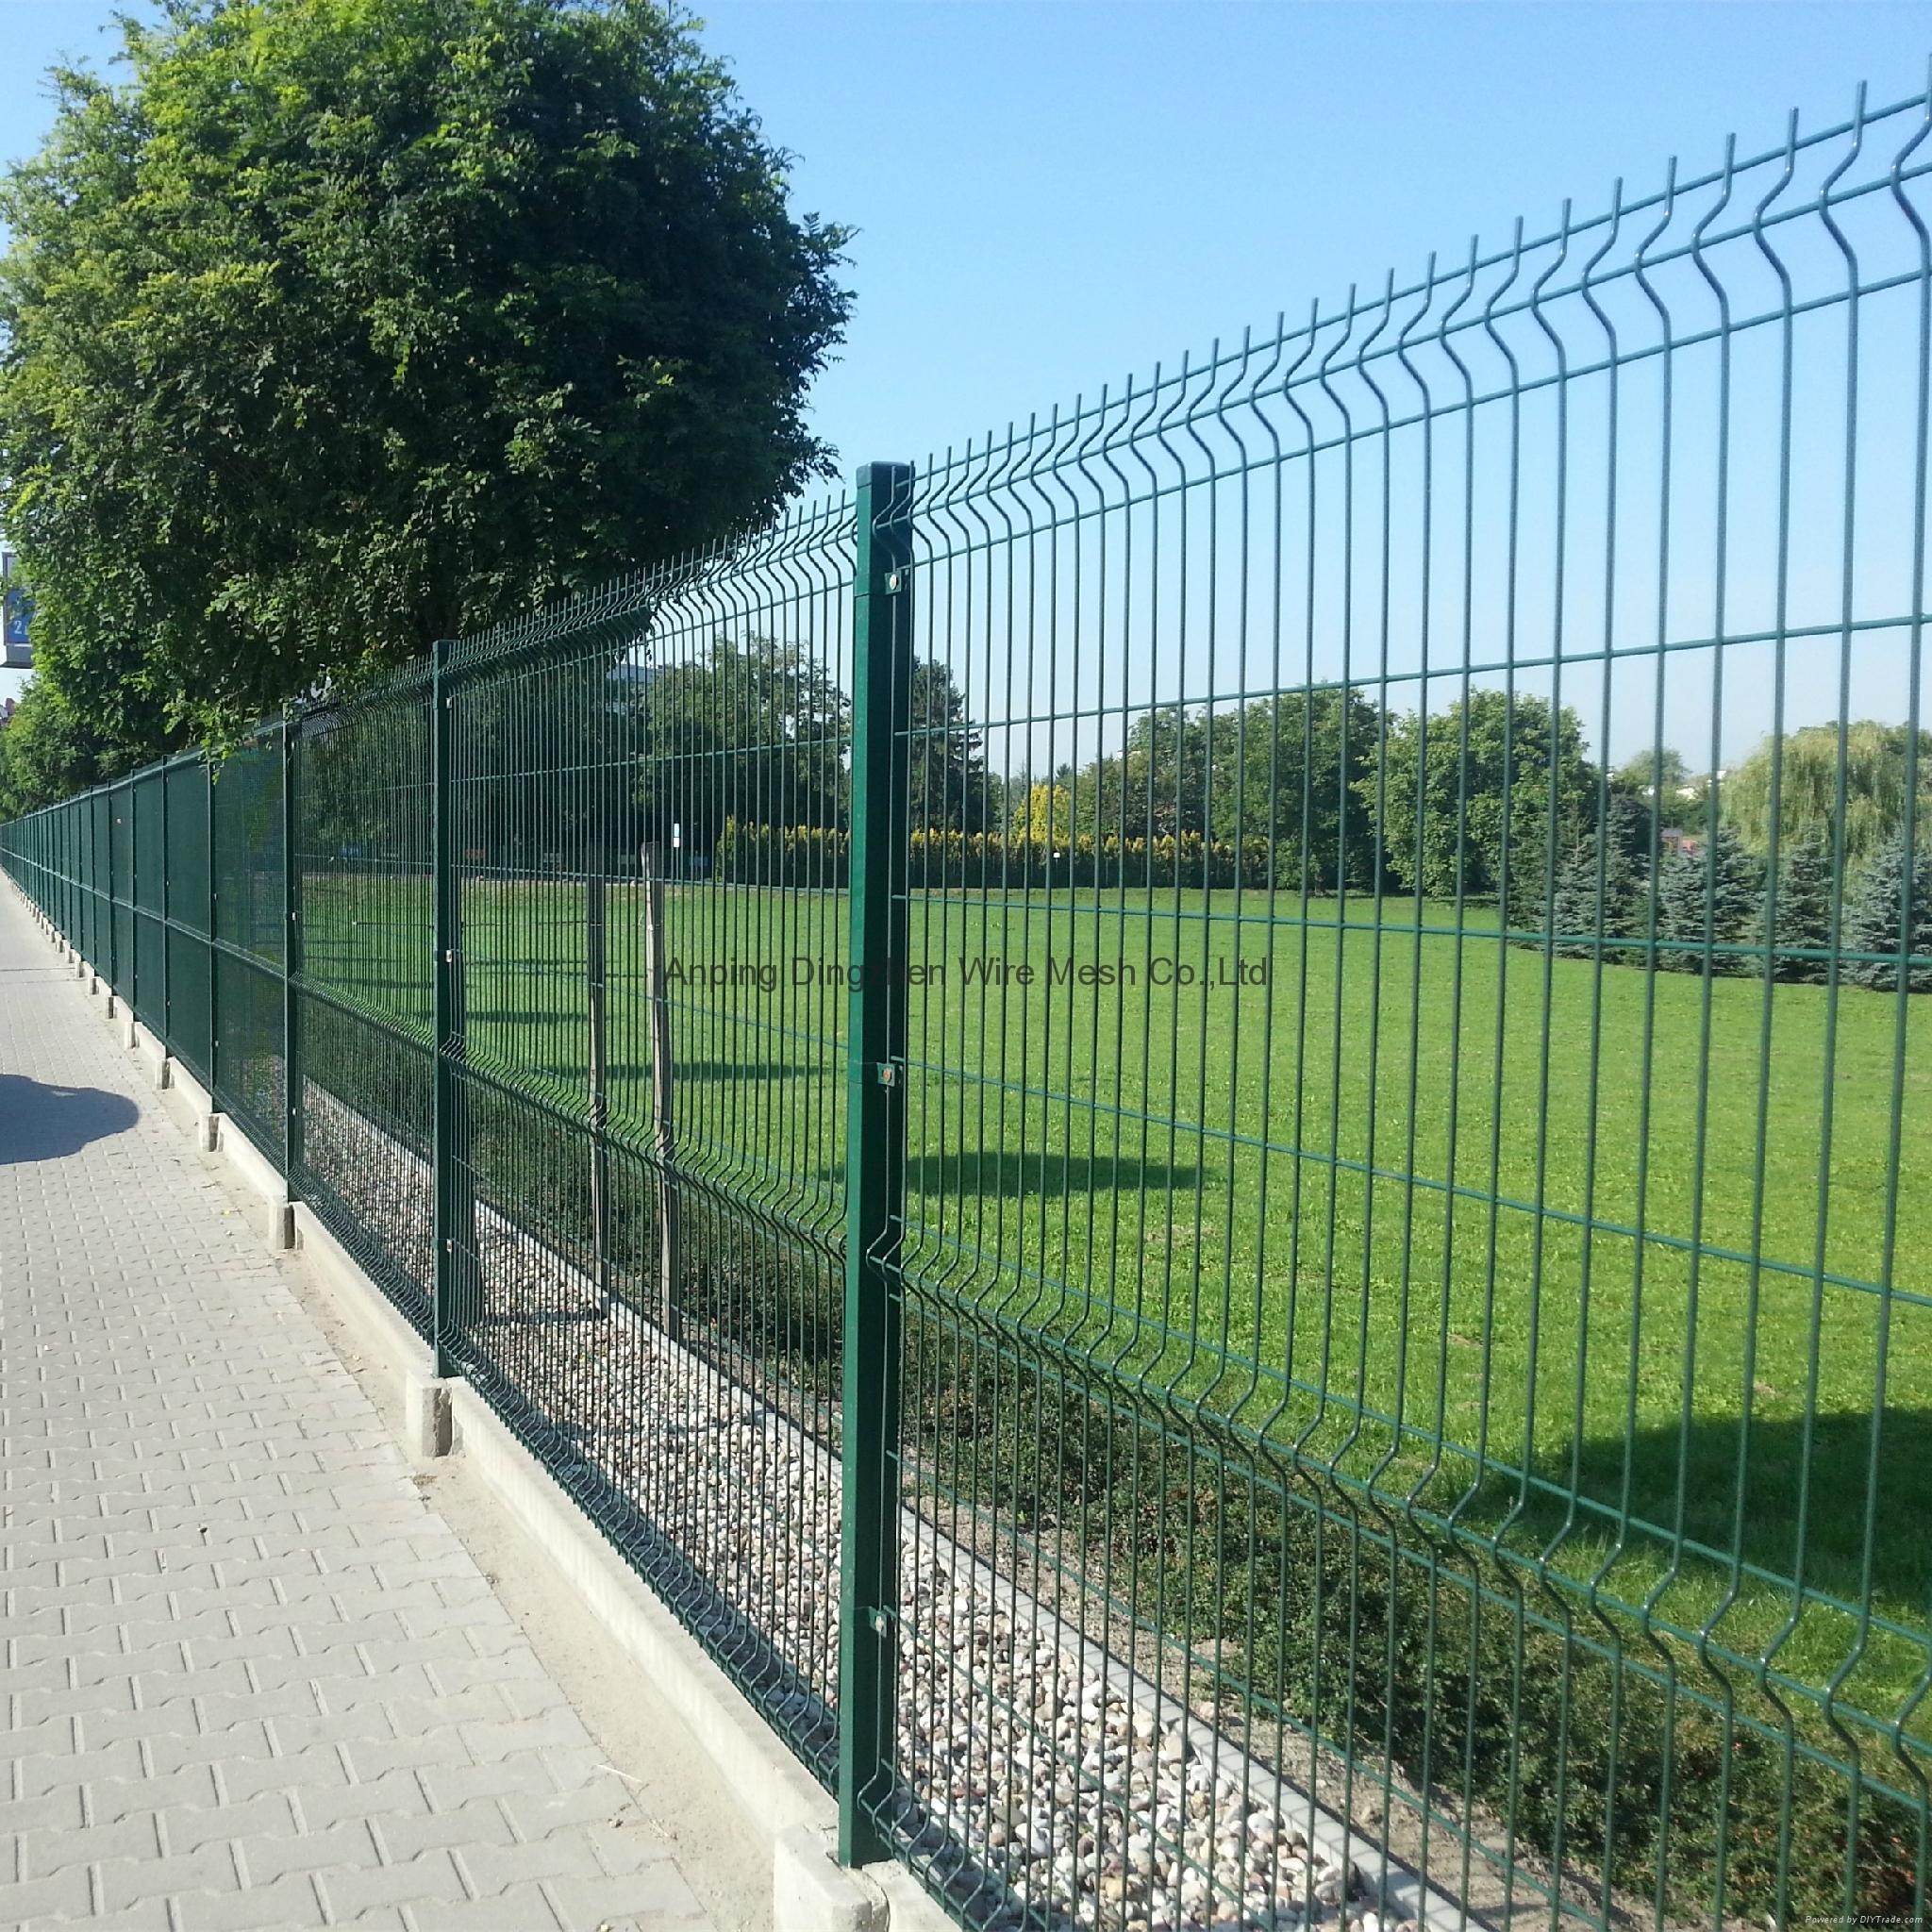 6 gauge welded wire mesh fence panels - DZ-J-Fence 02 - Dingzhen ...